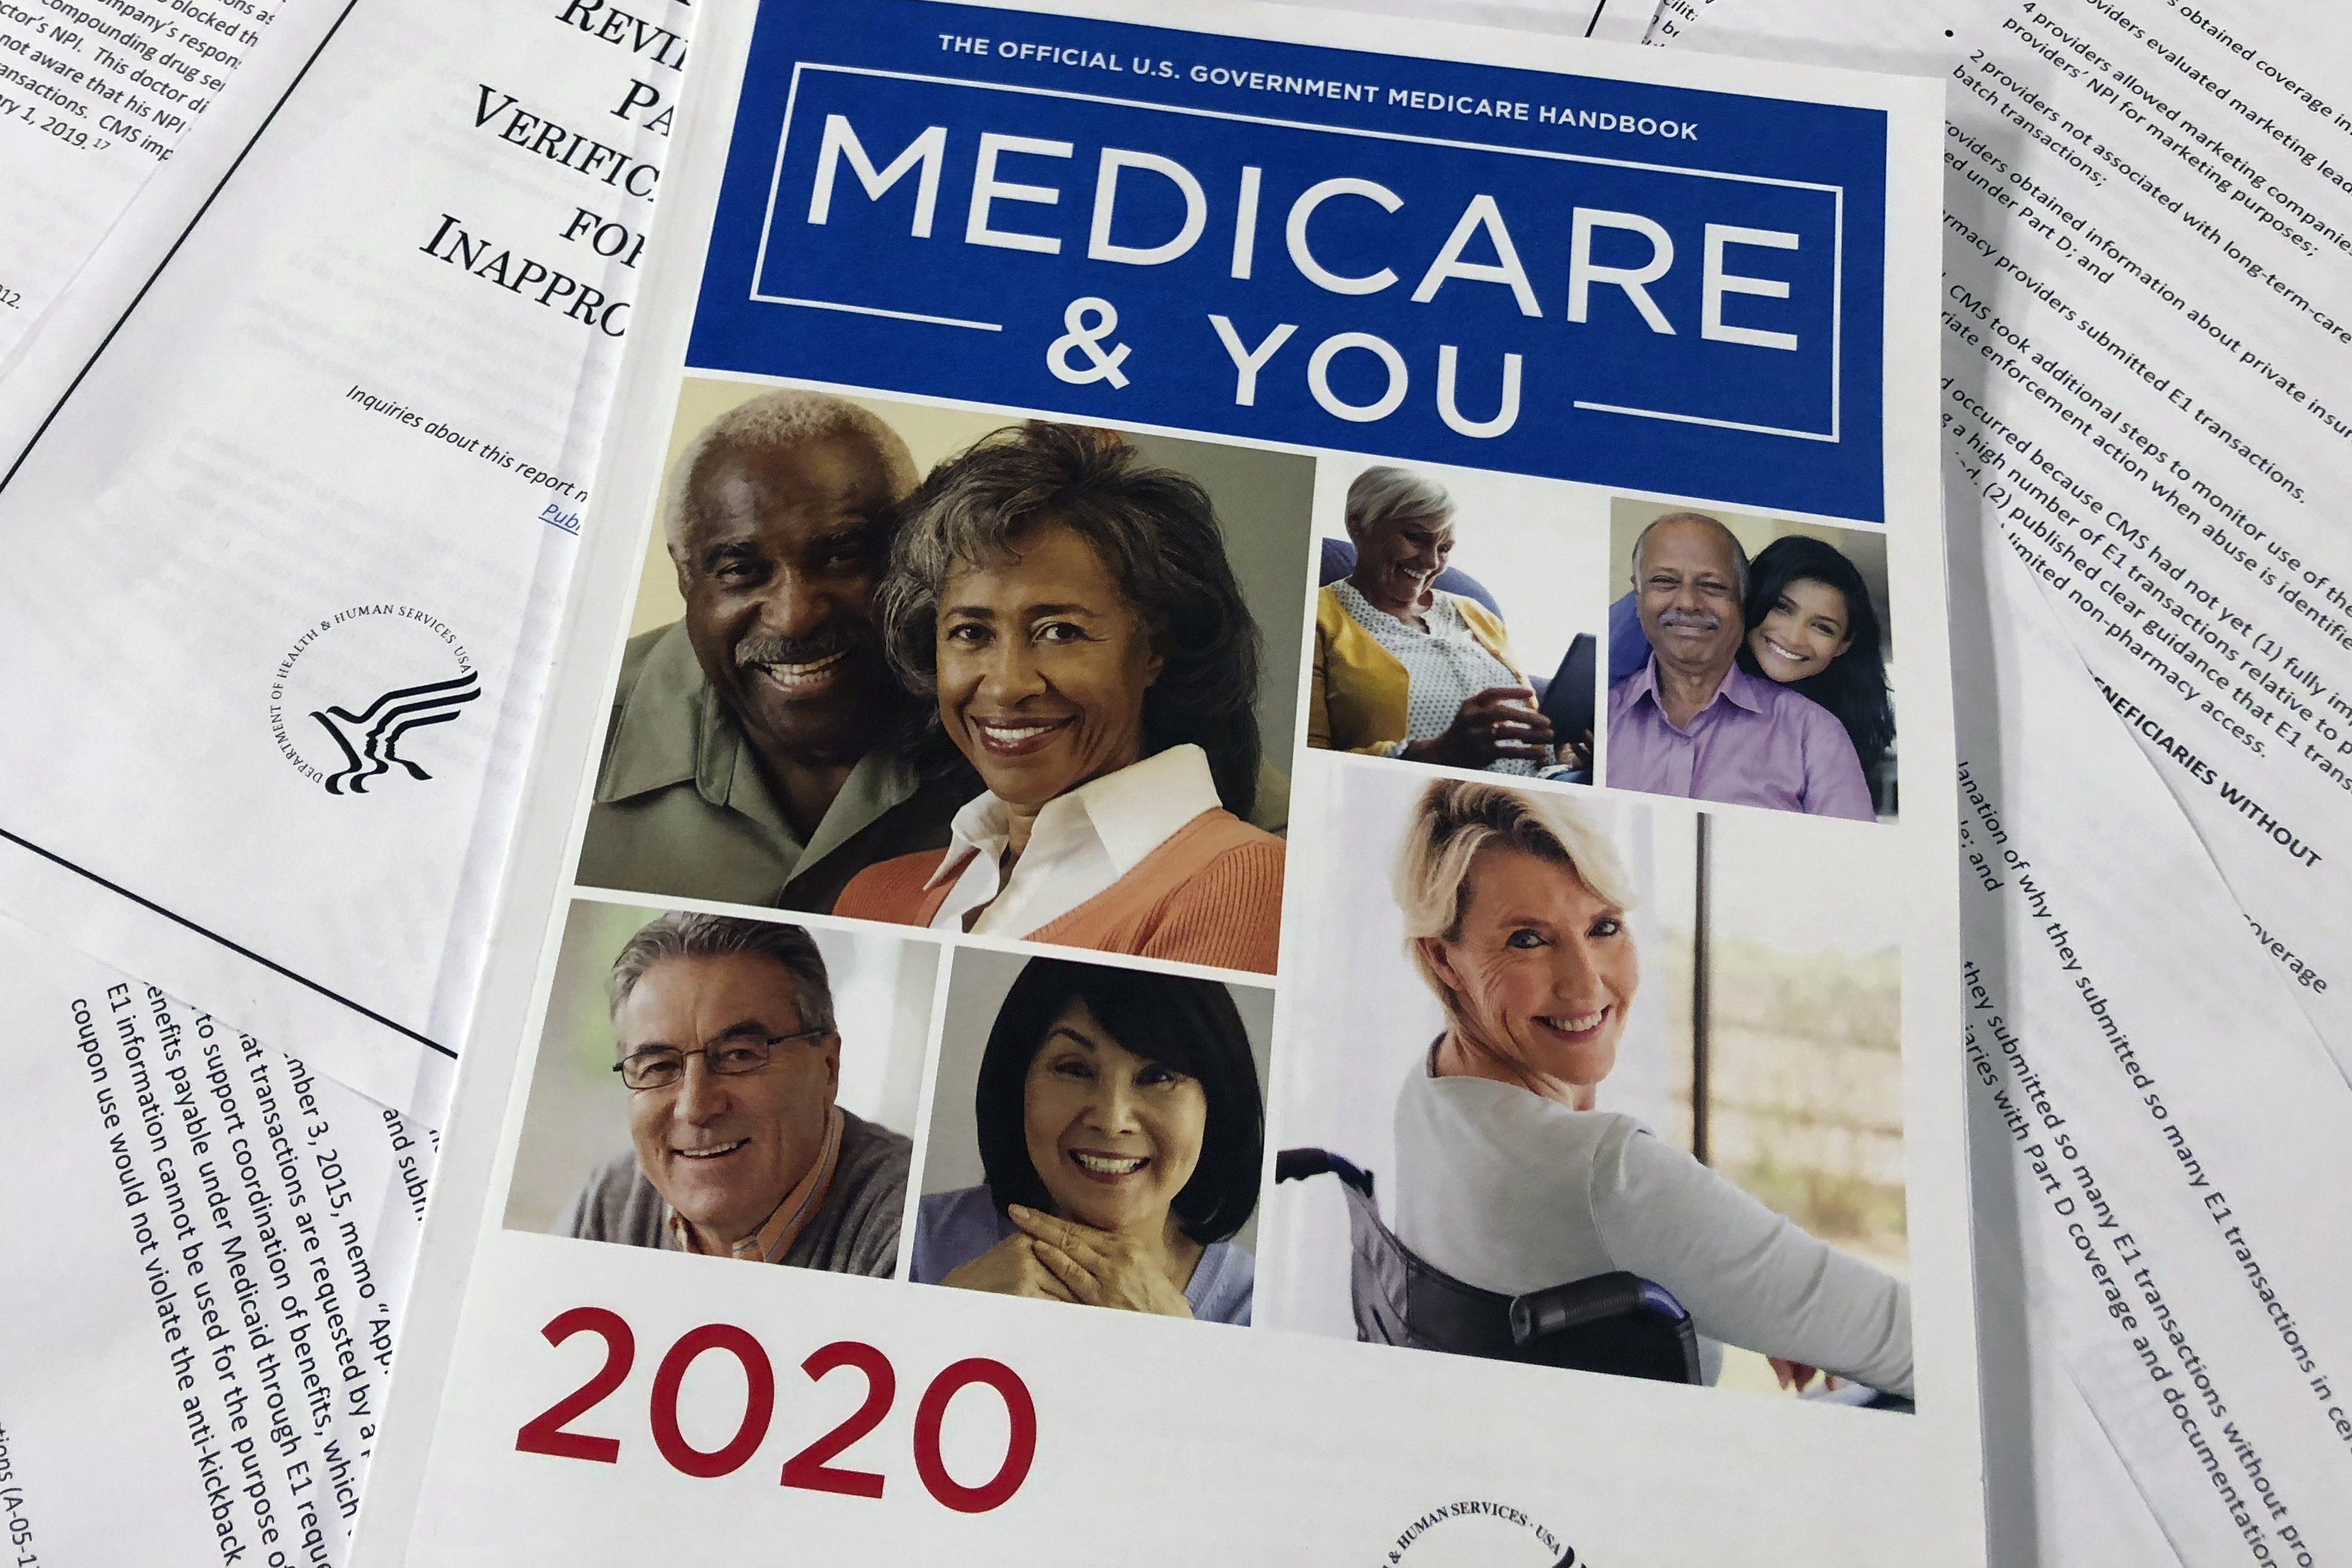 The Official U.S. Government Medicare Handbook for 2020 is seen in Washington on Feb. 13, 2020.